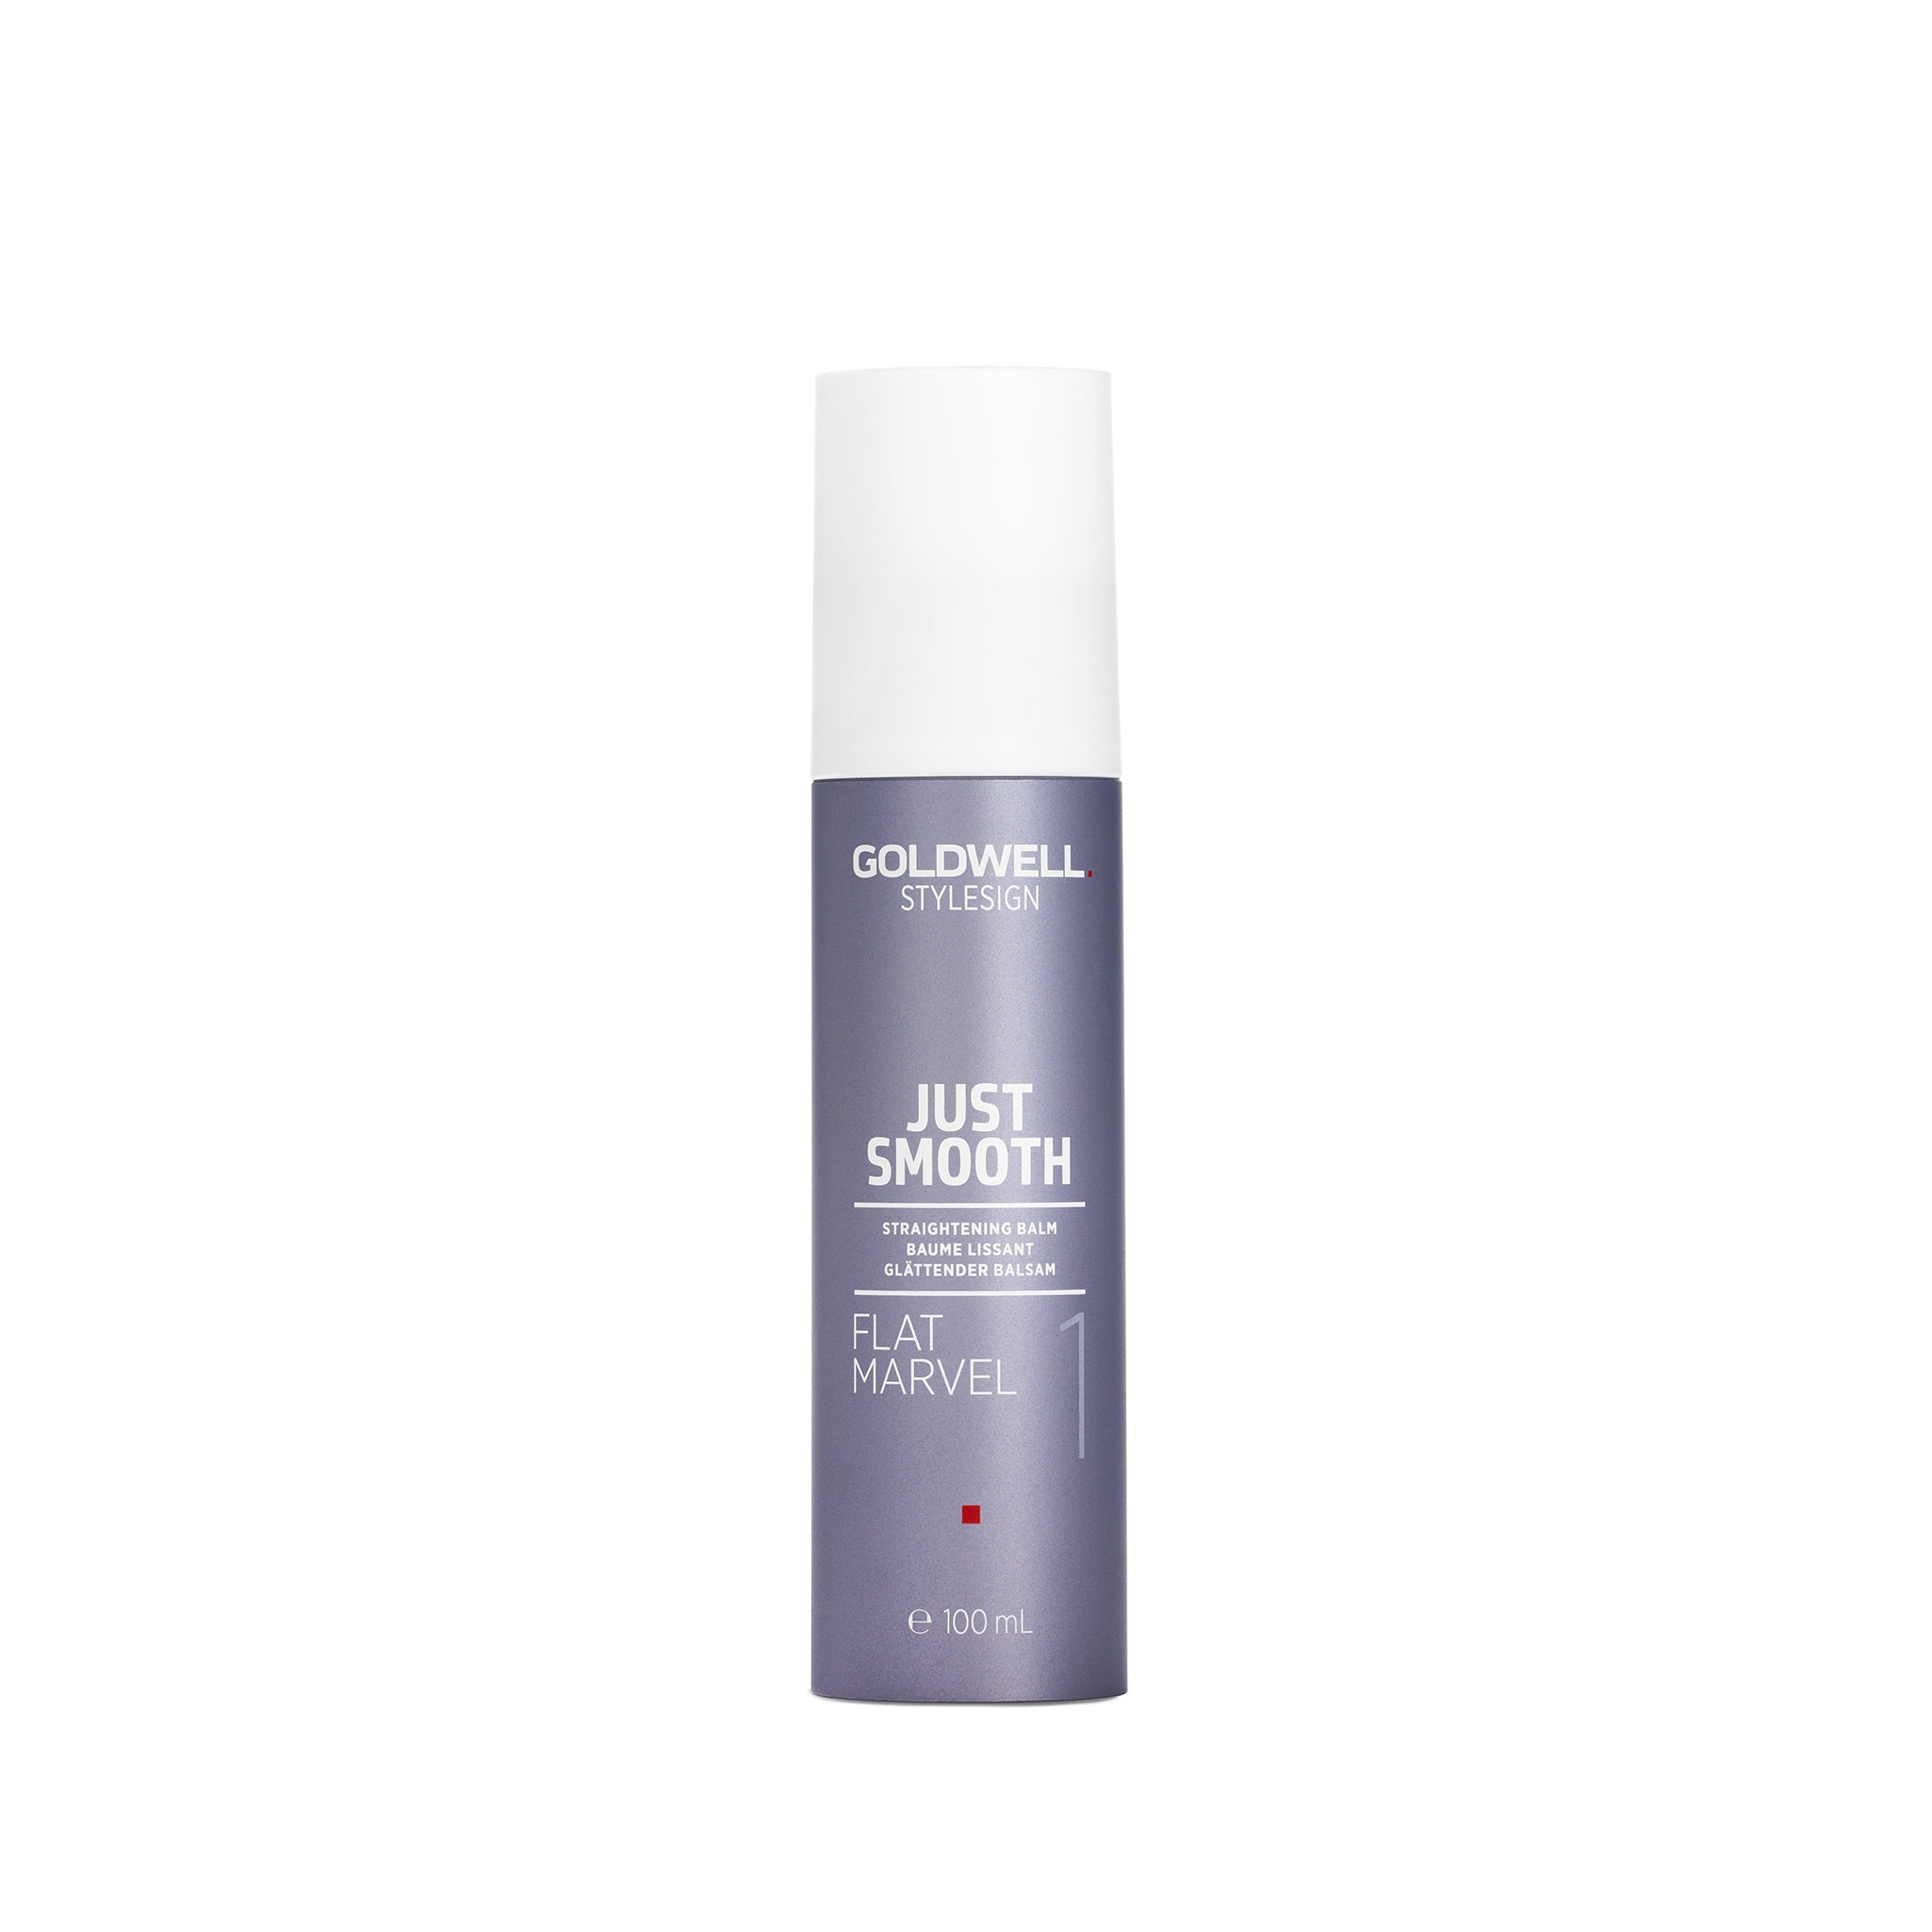 Goldwell Stylesign Just Smooth Flat Marvel Straightening Balm 100ml